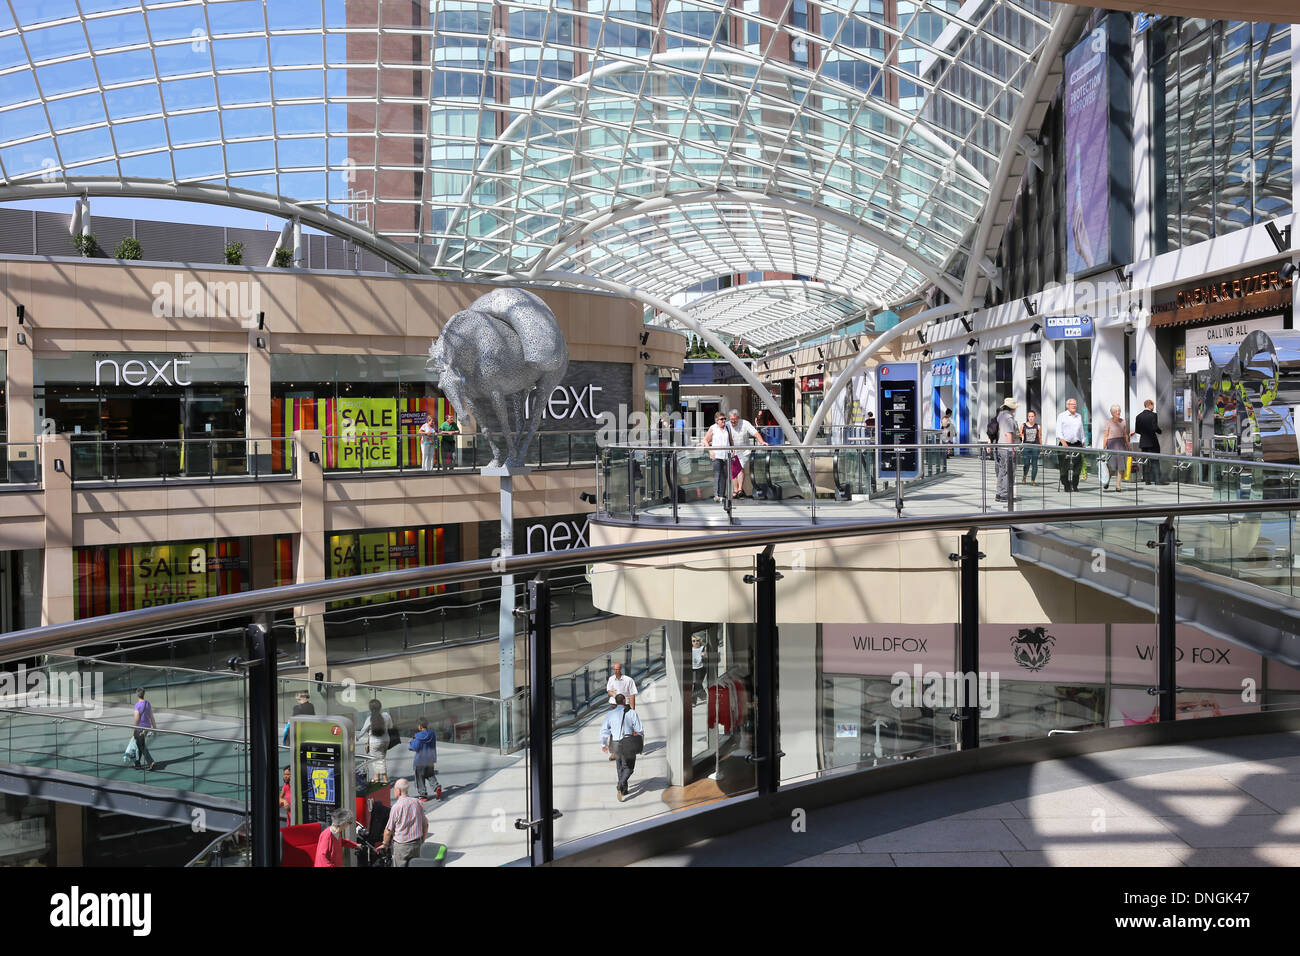 Interior of Trinity Leeds Shopping Centre showing packhorse sculpture - Stock Image